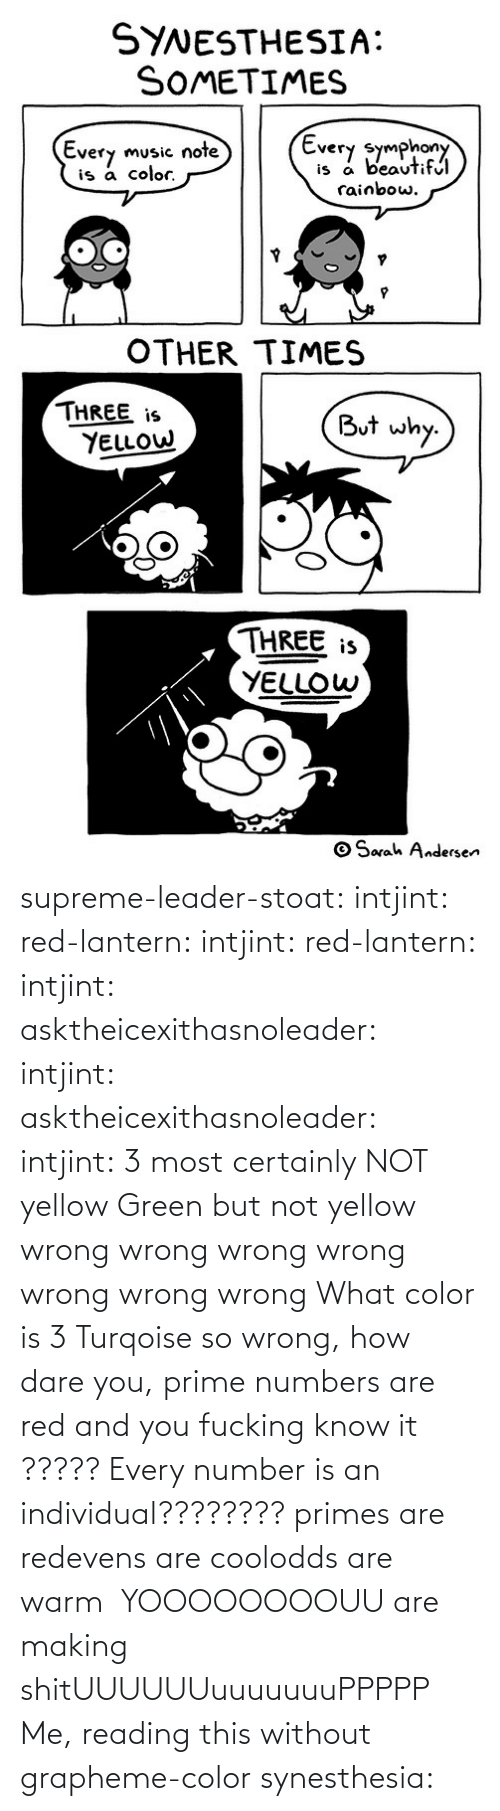 How Dare: supreme-leader-stoat: intjint:  red-lantern:  intjint:  red-lantern:  intjint:  asktheicexithasnoleader:  intjint:   asktheicexithasnoleader:  intjint:  3 most certainly NOT yellow   Green but not yellow  wrong wrong wrong wrong wrong wrong wrong    What color is 3  Turqoise  so wrong, how dare you, prime numbers are red and you fucking know it   ????? Every number is an individual????????  primes are redevens are coolodds are warm   YOOOOOOOOUU are making shitUUUUUUuuuuuuuPPPPP  Me, reading this without grapheme-color synesthesia: